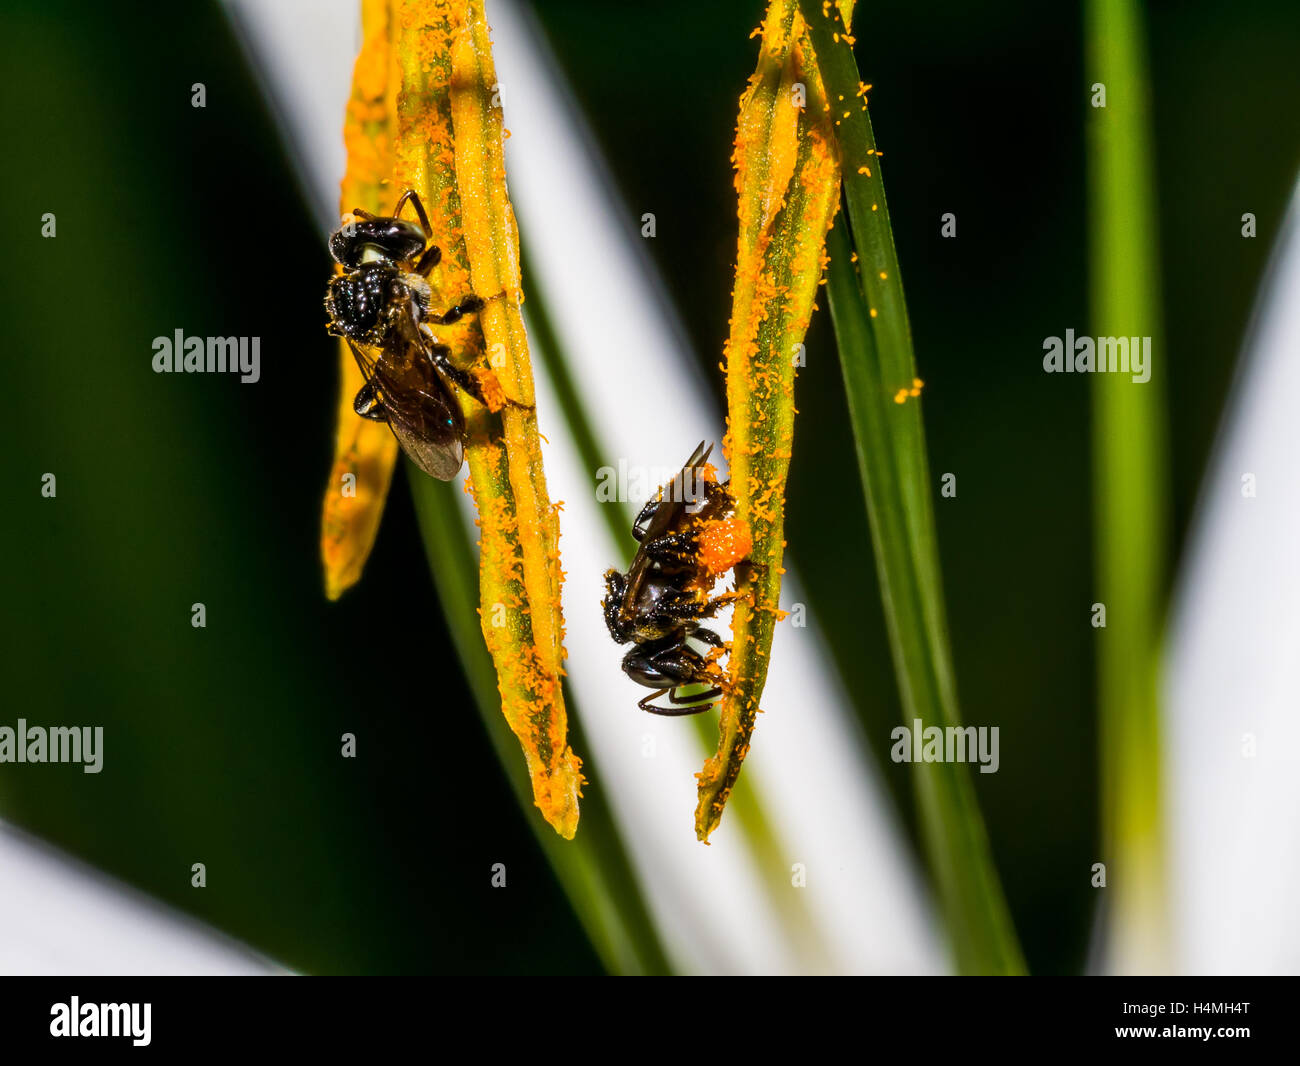 Stingless Bee on the pollen in the garden Stock Photo